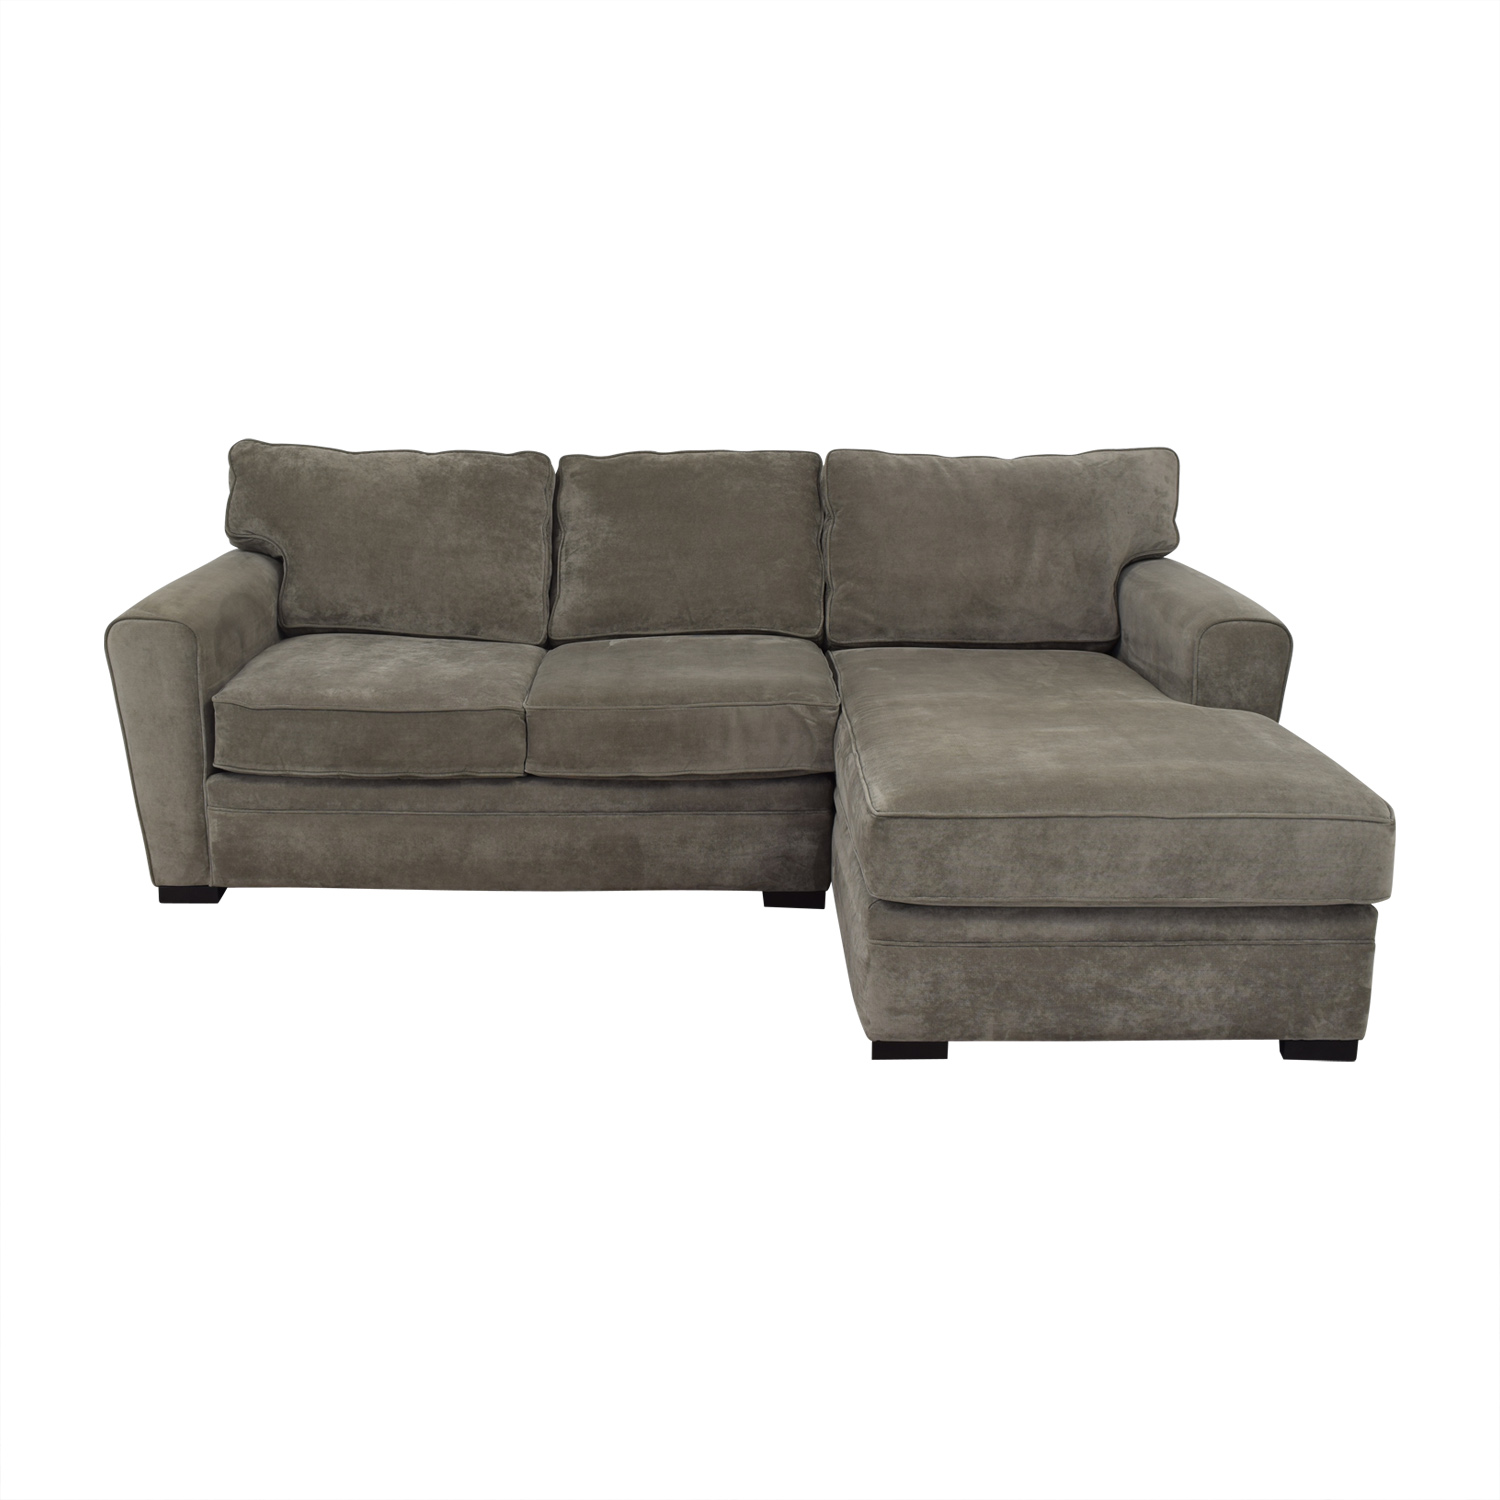 Raymour & Flanigan Raymour & Flanigan Artemis II Sectional Sofa with Chaise second hand